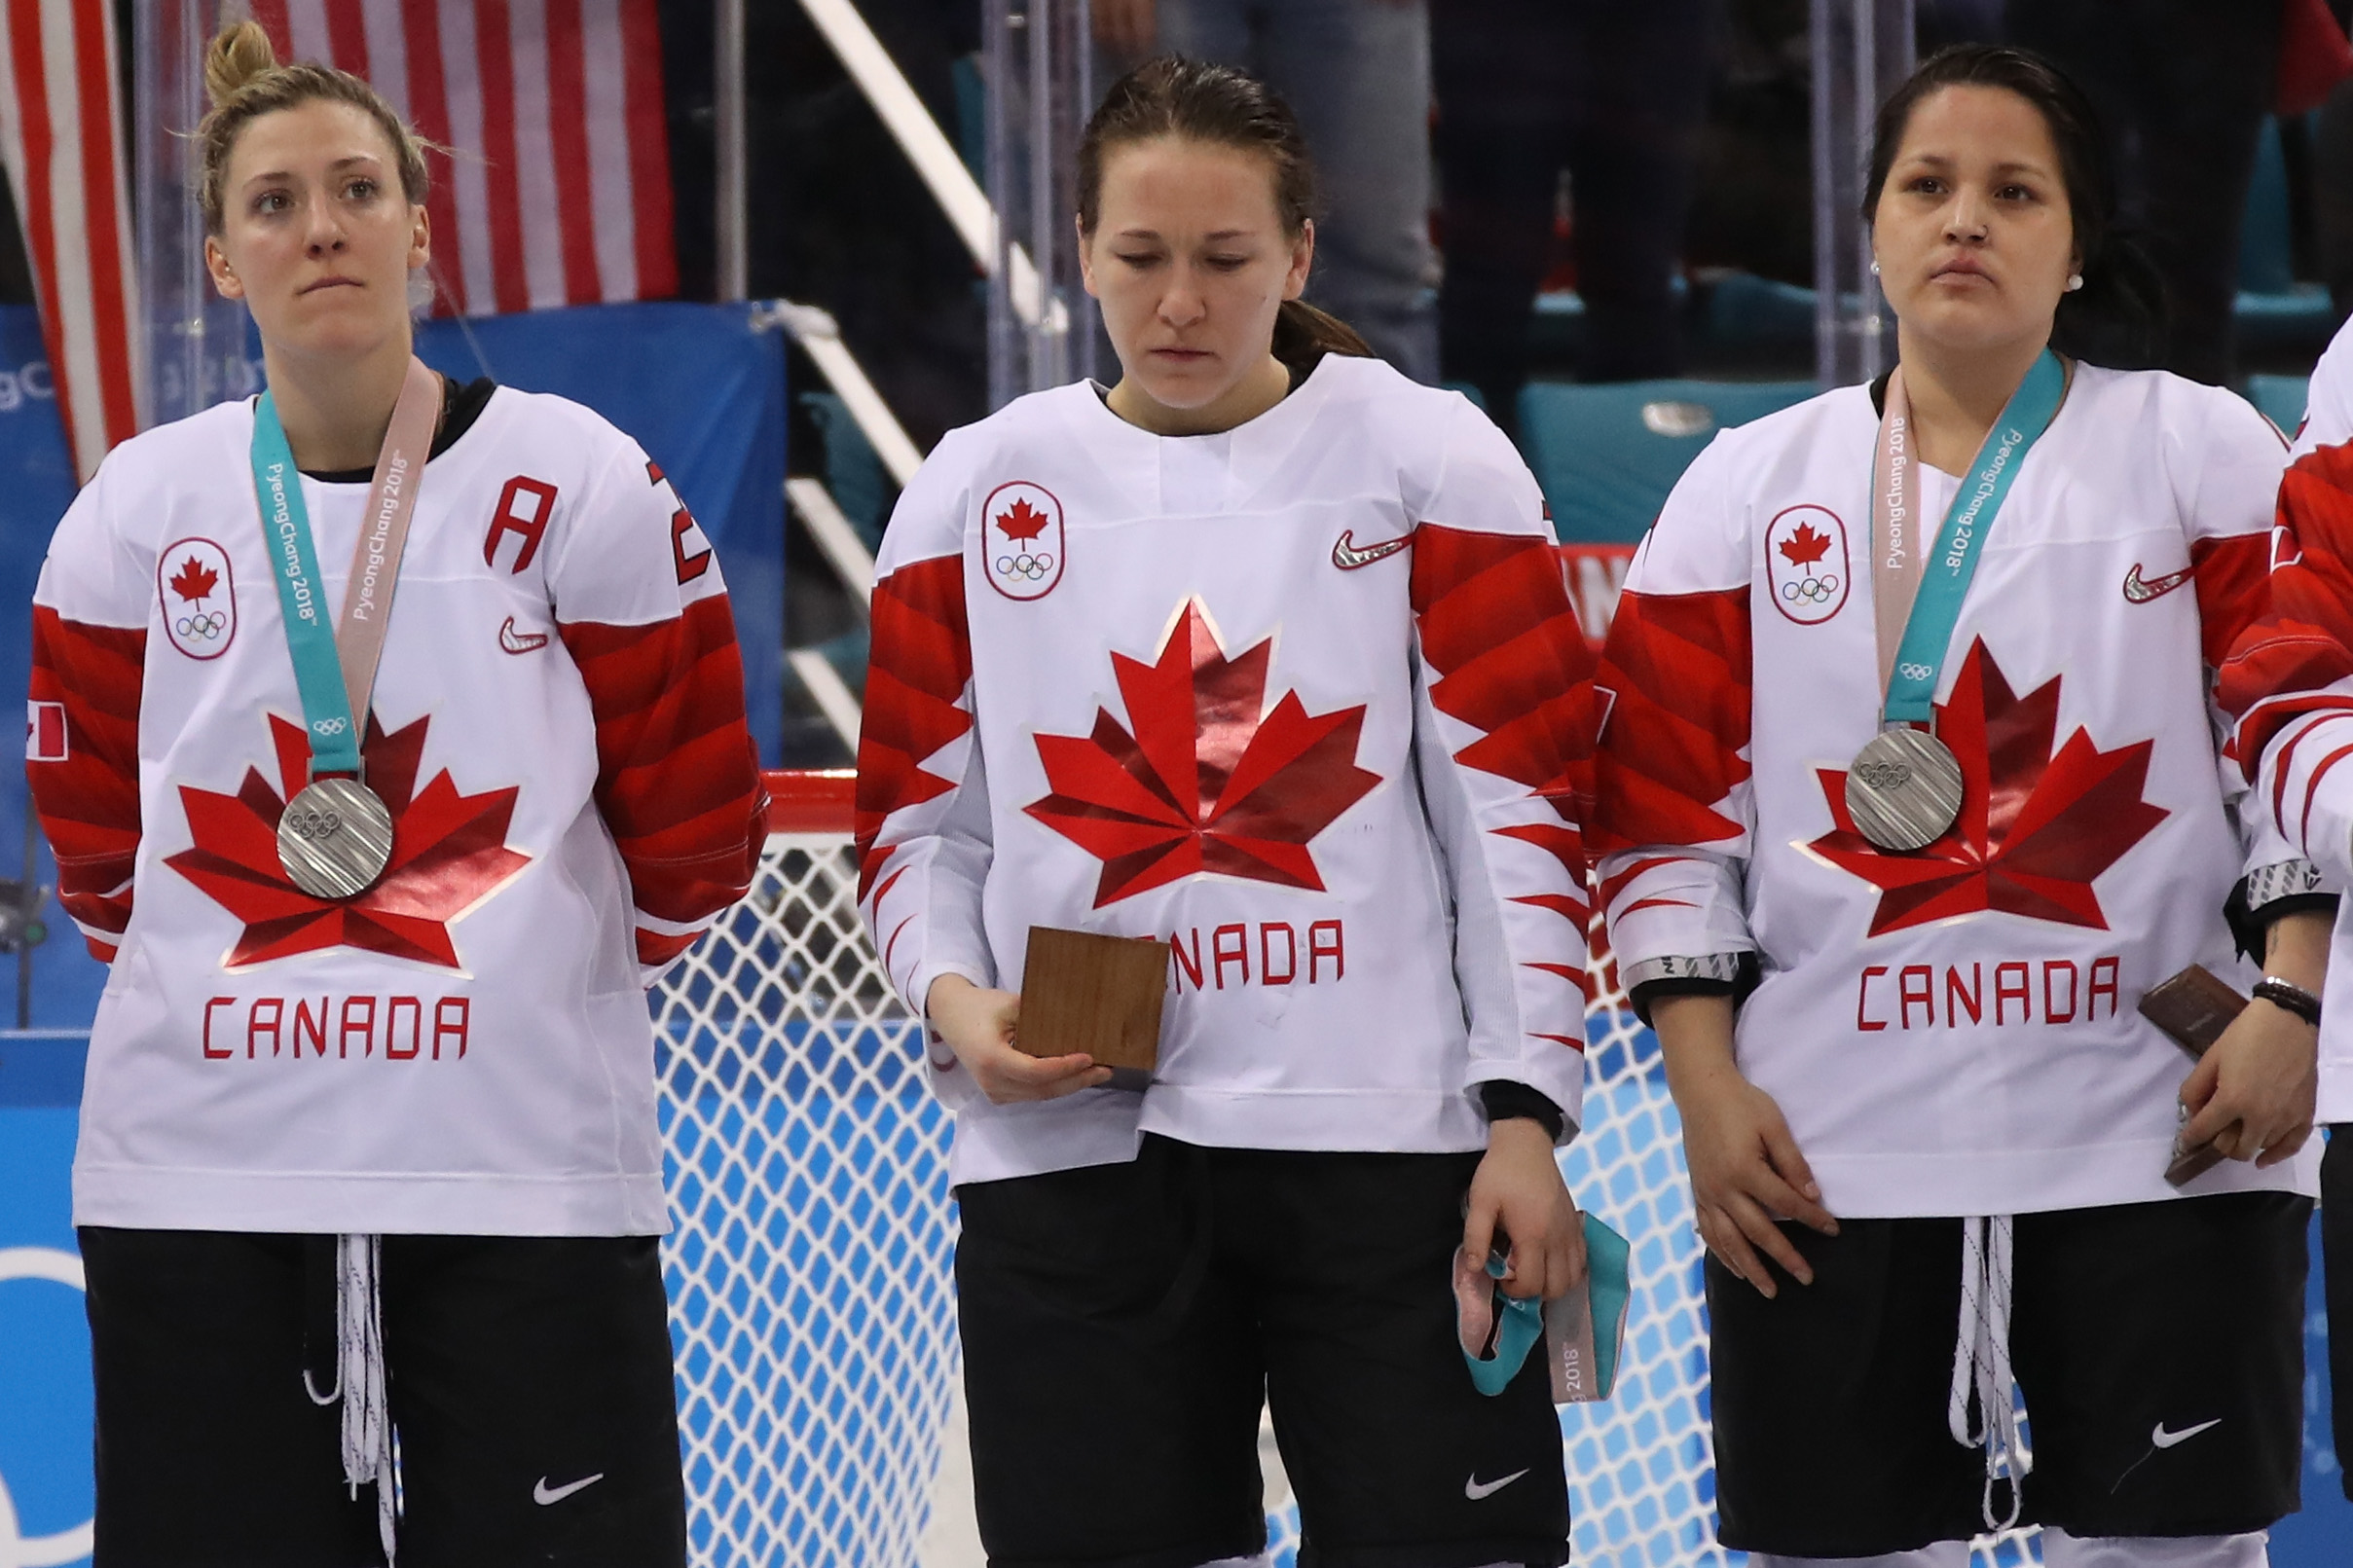 Jocelyne Larocque #3 of Canada refuses to wear her silver medal after losing to the United States in the Women's Gold Medal Game on day thirteen of the PyeongChang 2018 Winter Olympic Games at Gangneung Hockey Centre on February 22, 2018 in Gangneung, South Korea.  (Photo by Bruce Bennett/Getty Images)